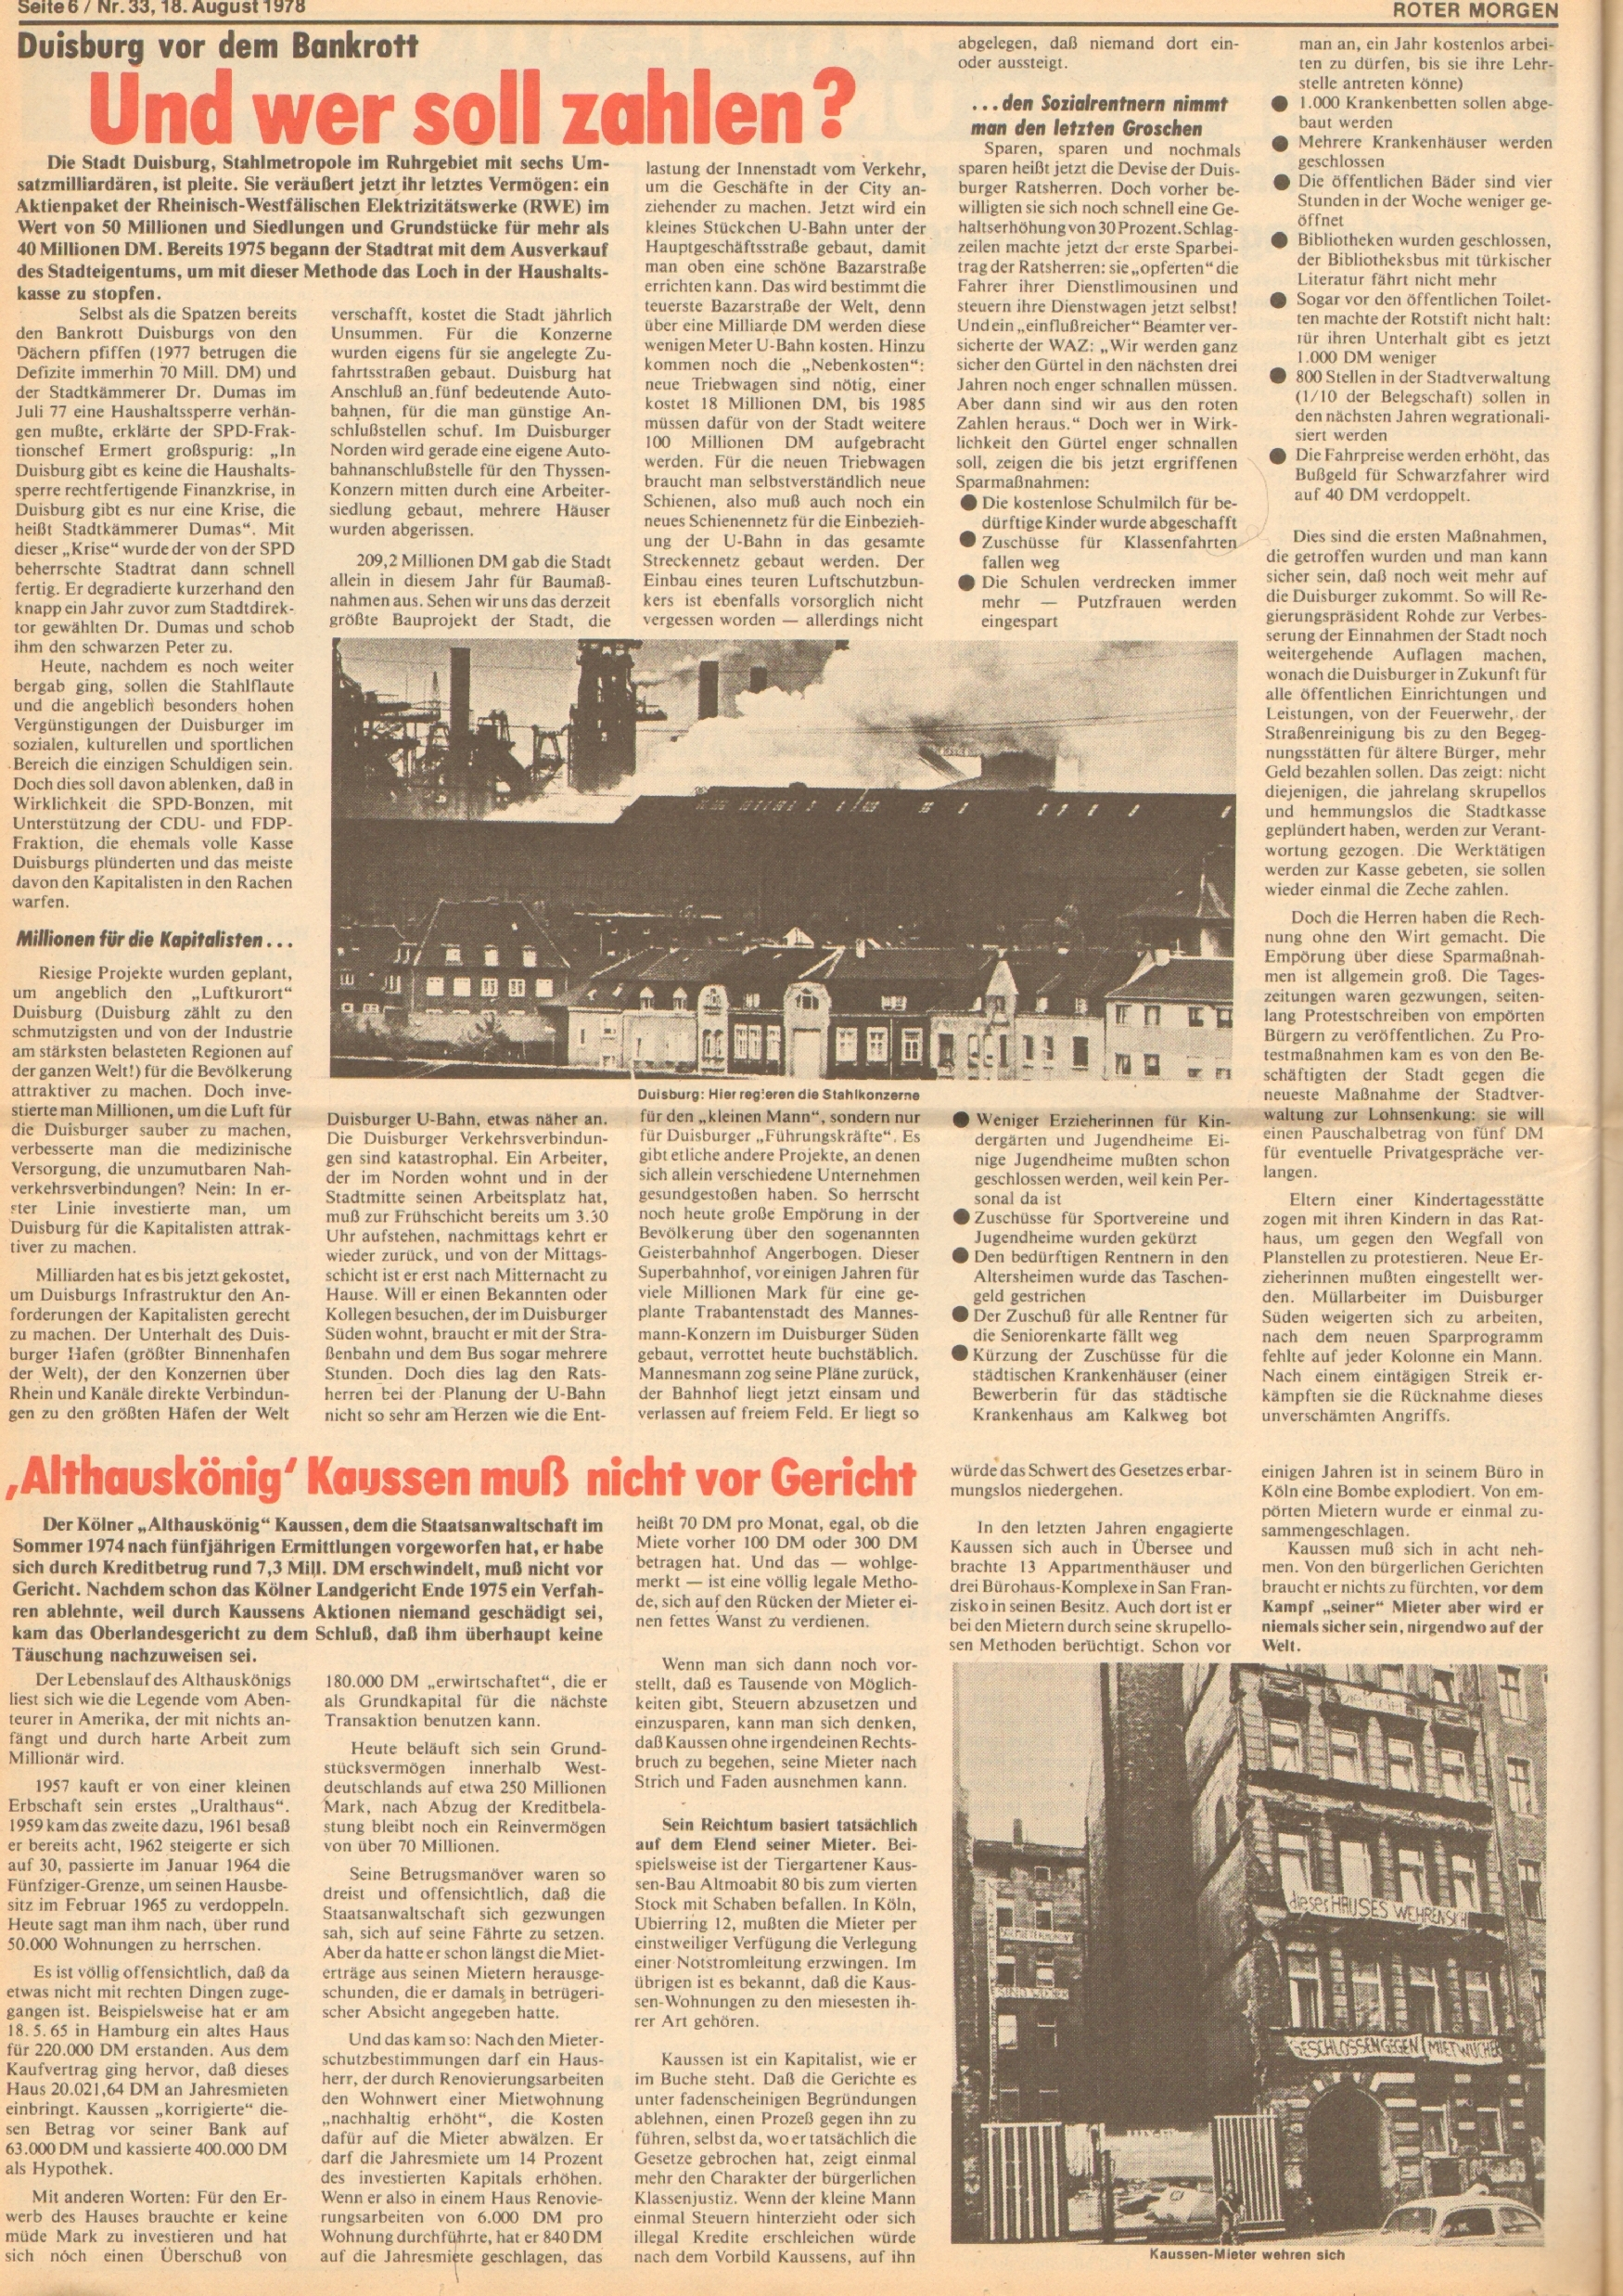 Roter Morgen, 12. Jg., 18. August 1978, Nr. 33, Seite 6